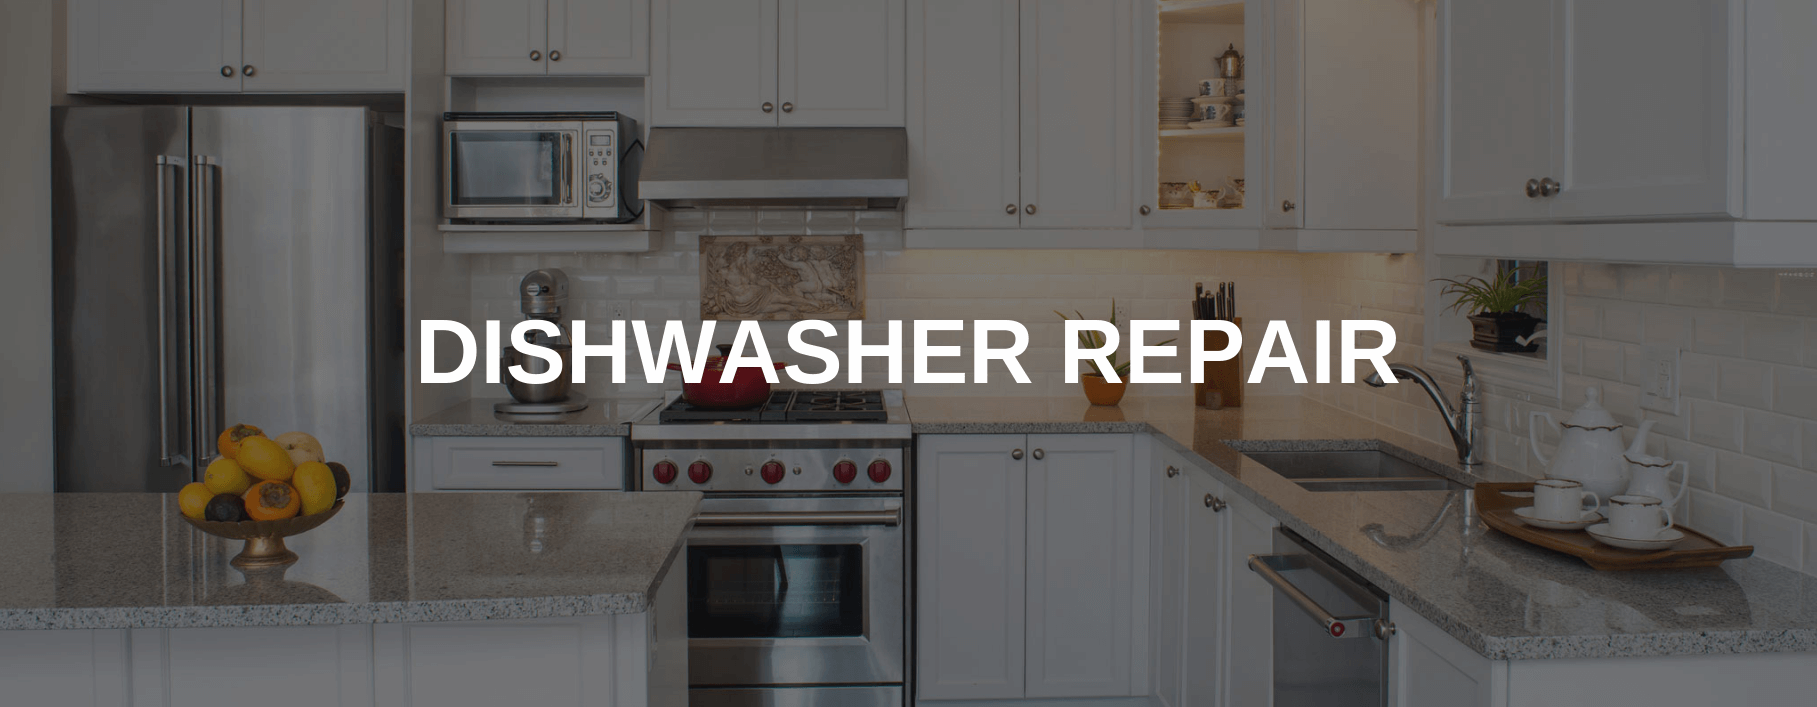 dishwasher repair sterling heights